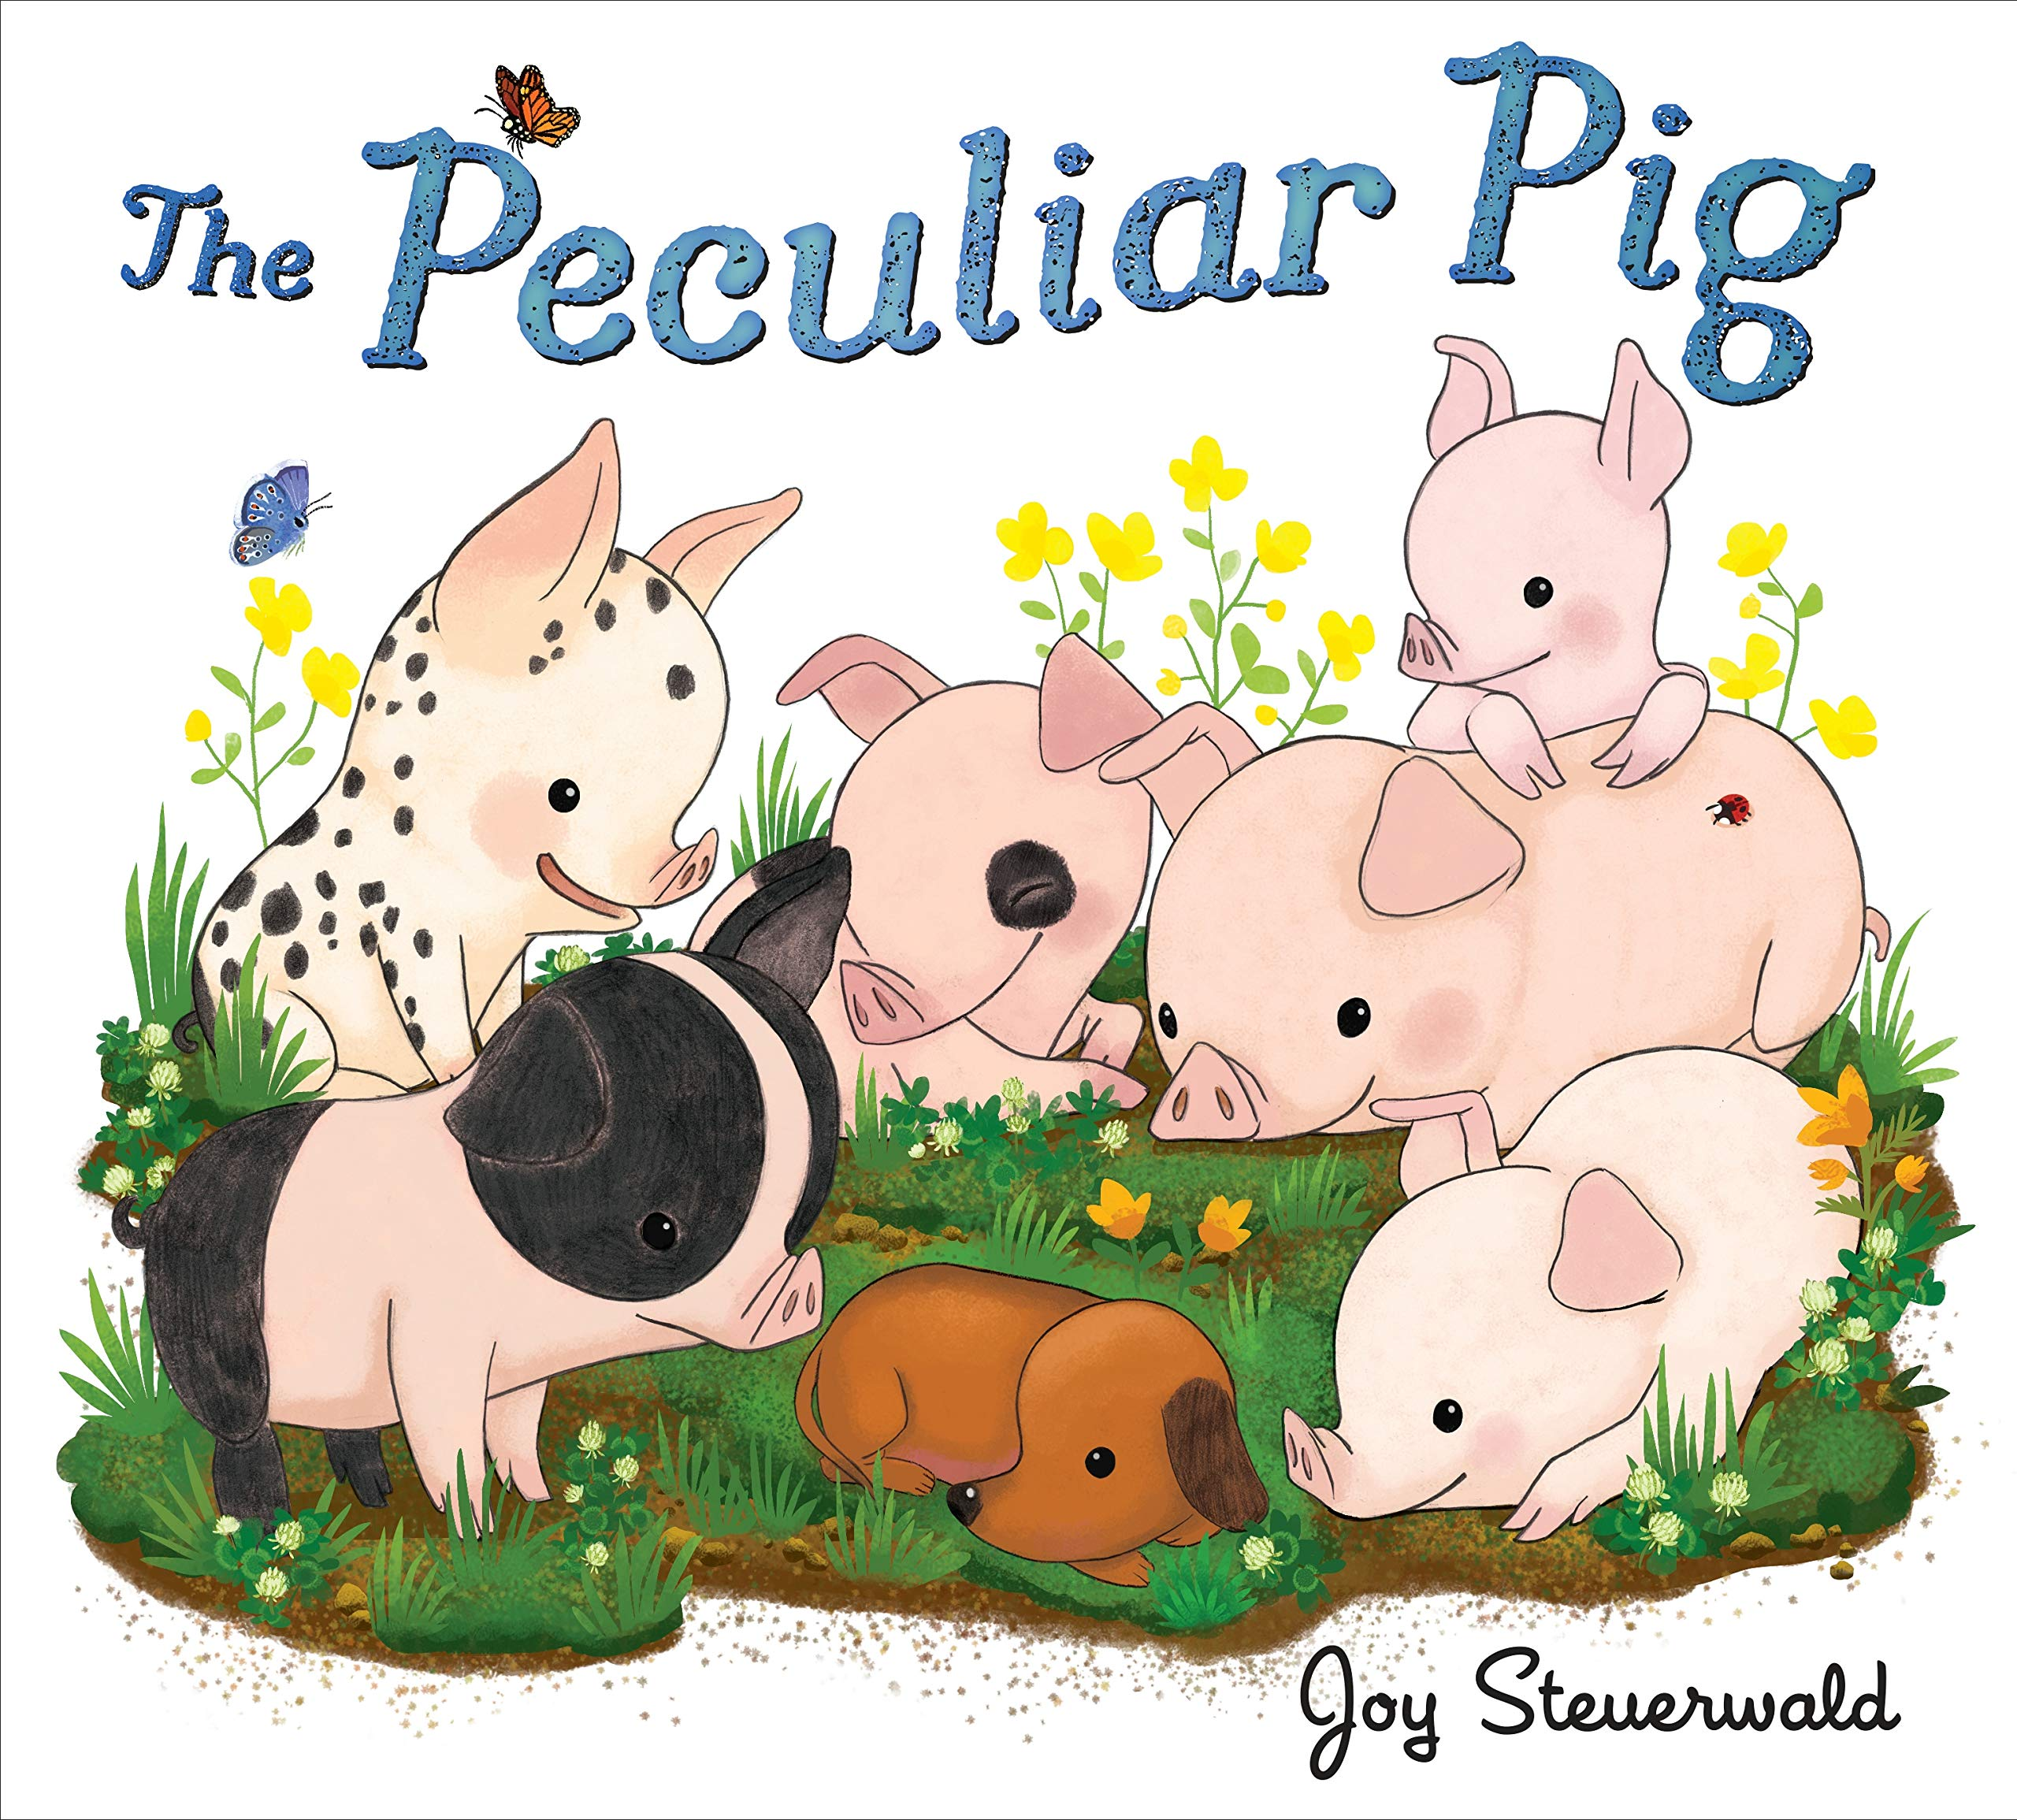 Meet Joy Steuerwald, Local Author & Illustrator